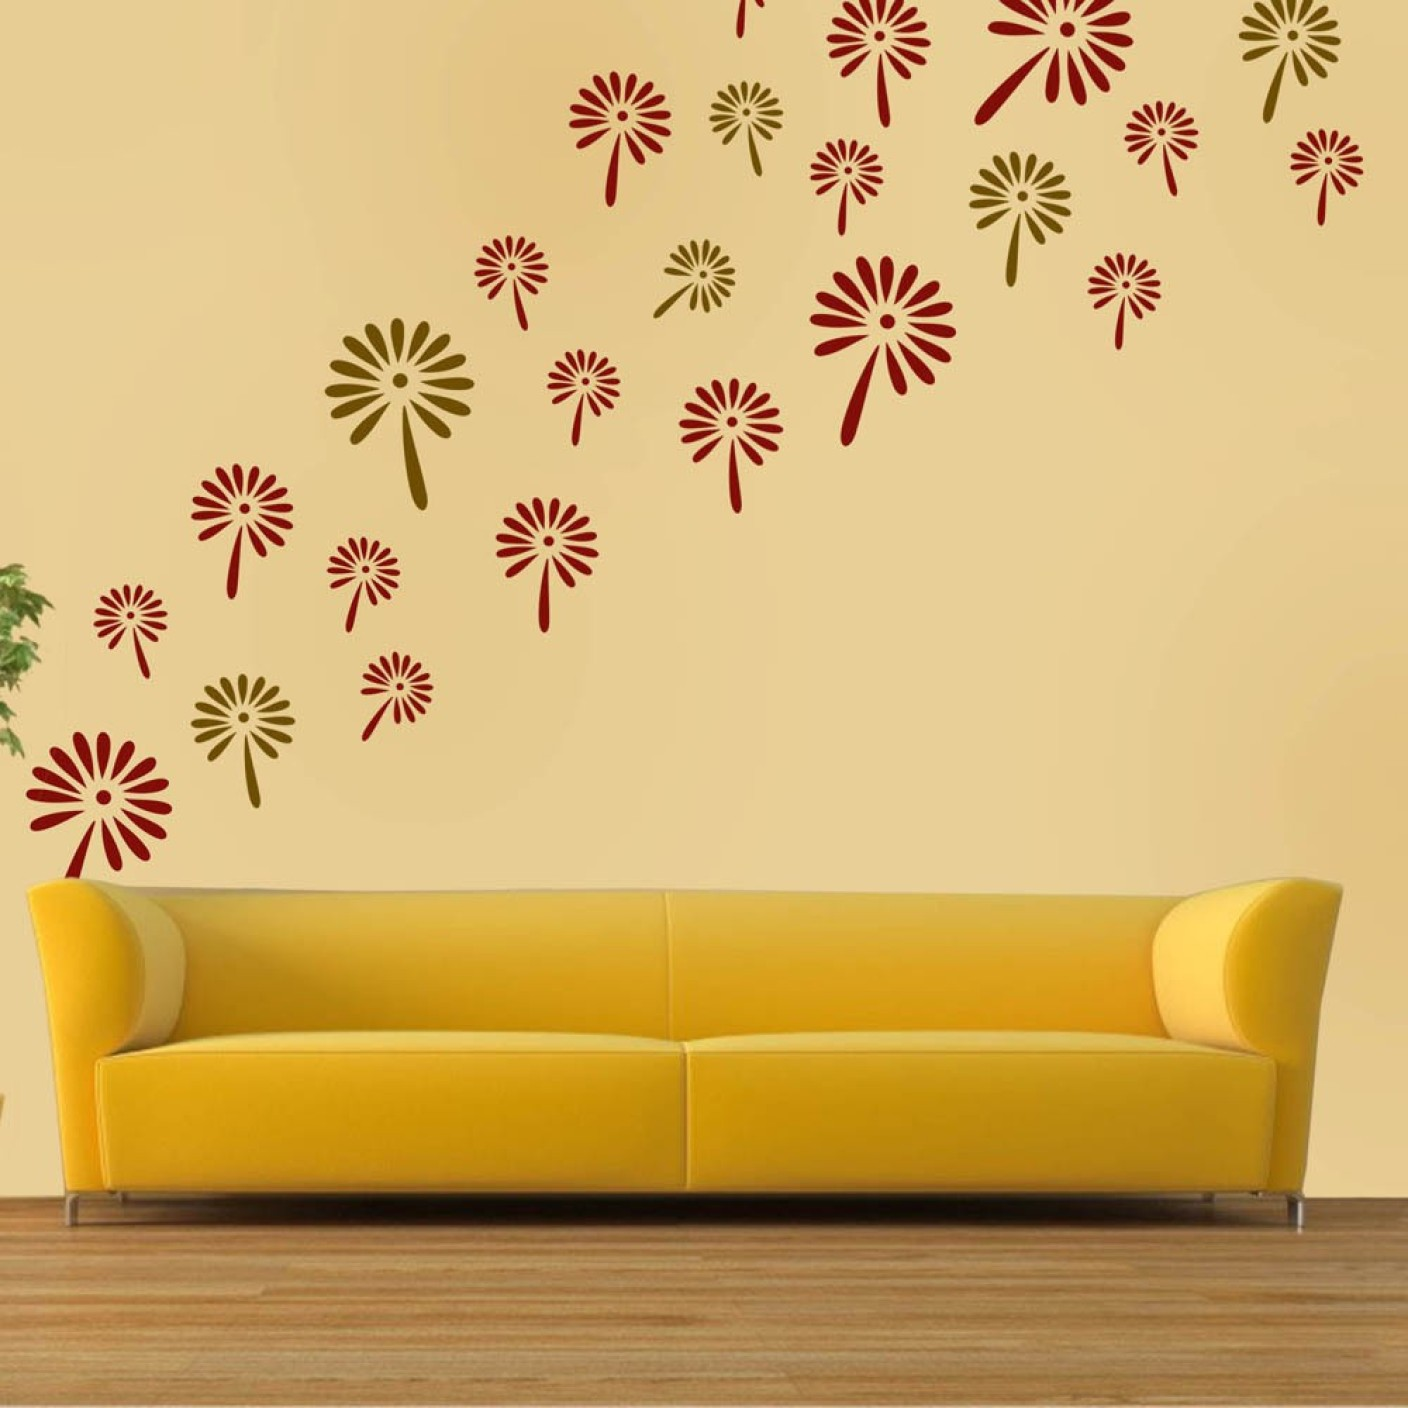 Lovely Benzara Wall Art Pictures Inspiration - The Wall Art ...